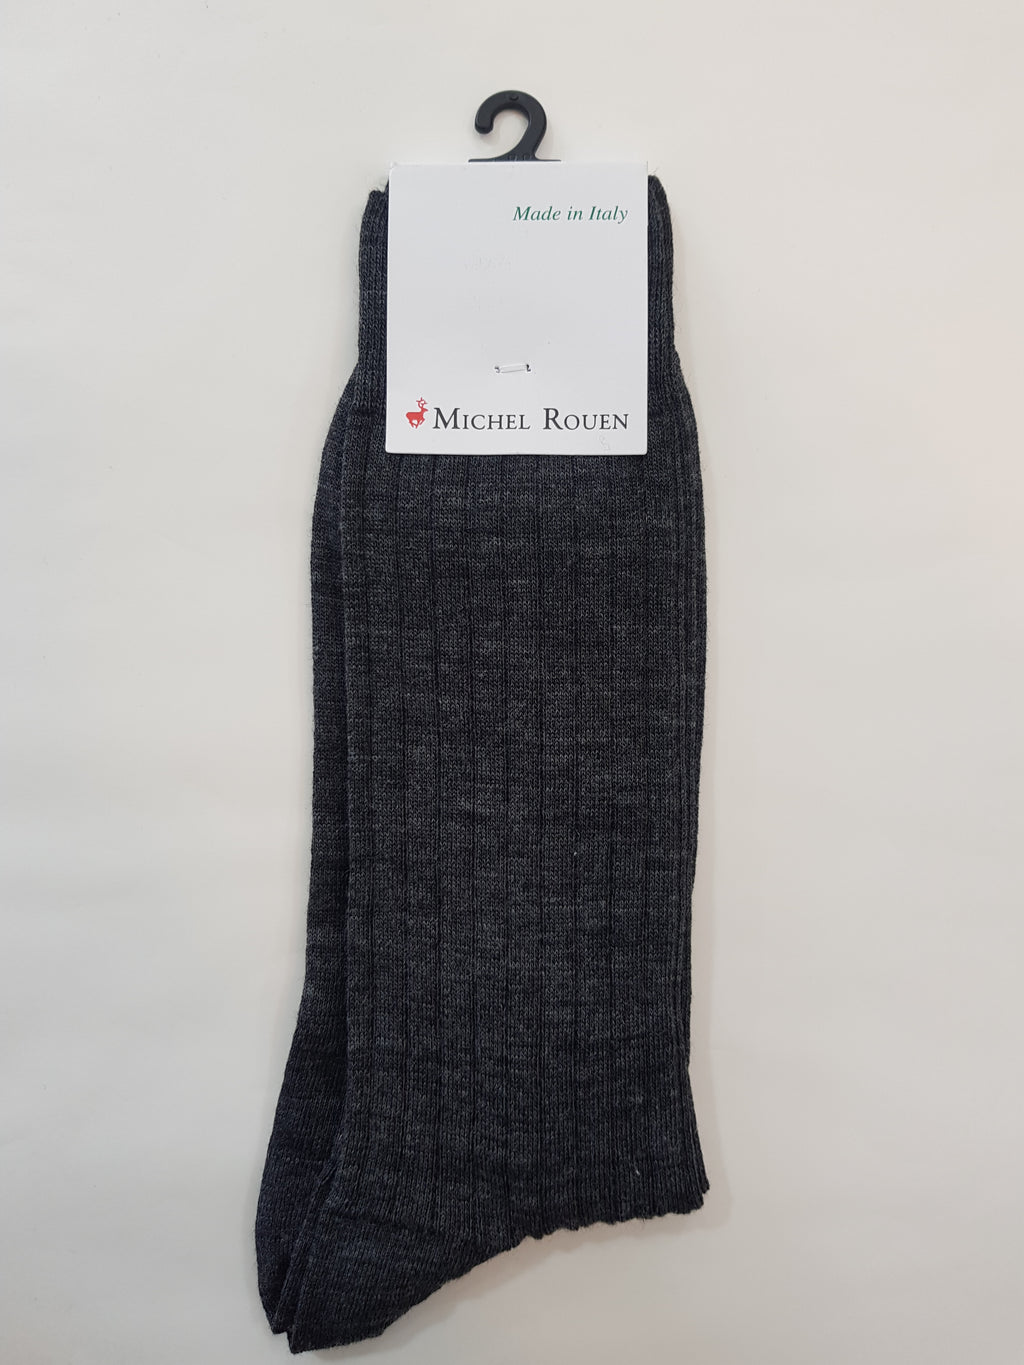 Michel Rouen Italian Wool Socks - Grey